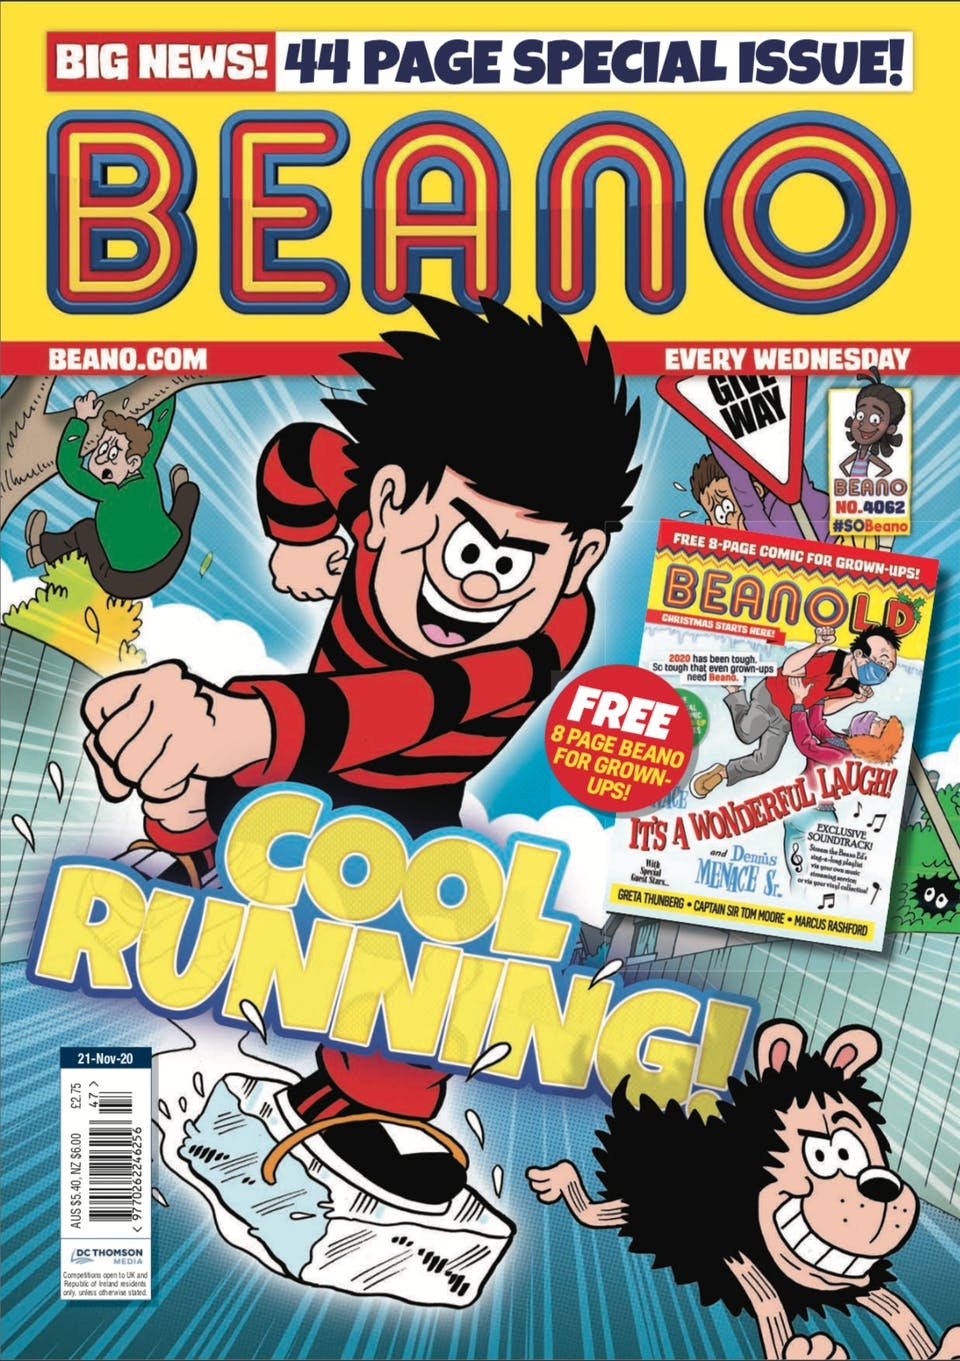 Inside Beano no. 4062 - The Coolest Kid in Beanotown!